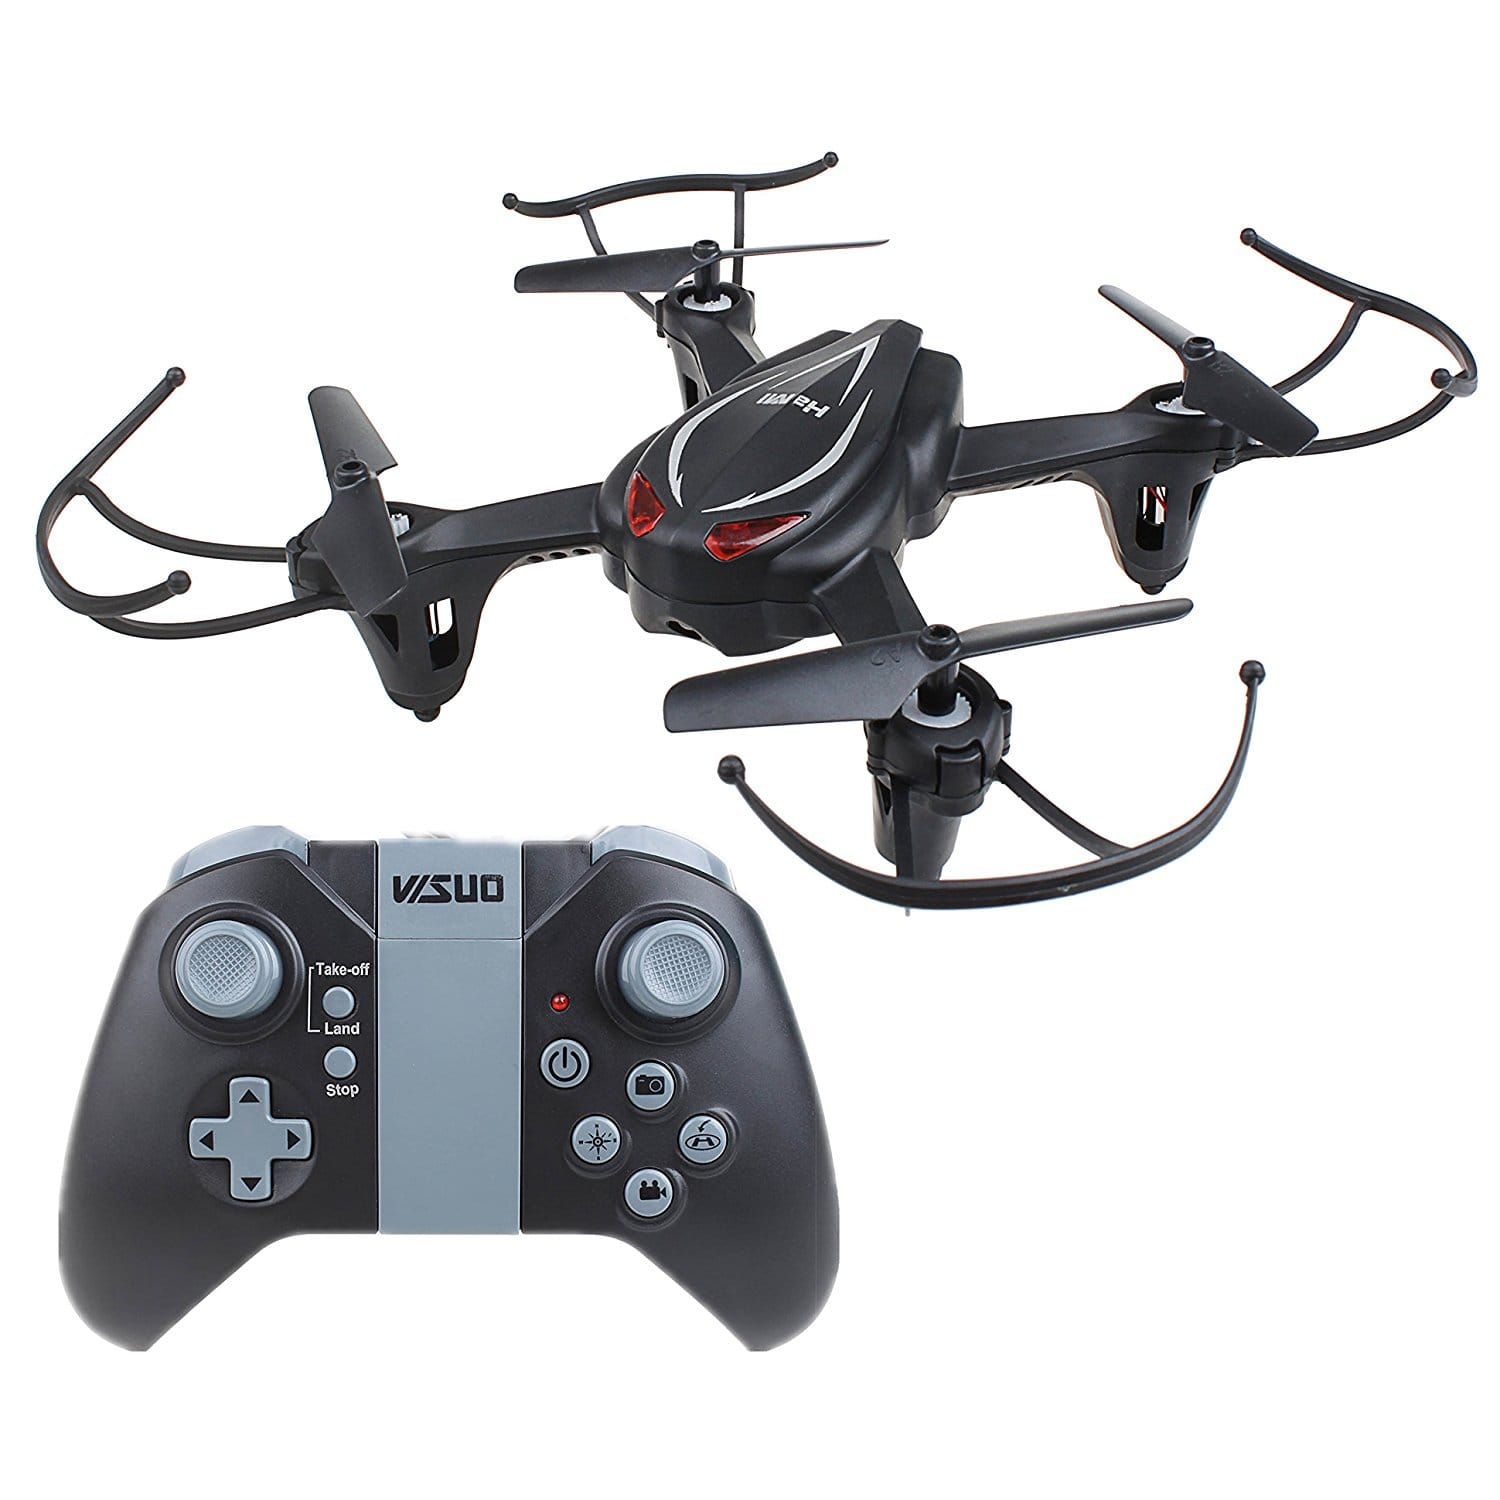 HaMi RC Helicopter Drone, Remote Control Helicopter 2.4Ghz 4CH 6-Axis Gyro Headless Quadcopter Drone with Altitude Hold - Black $19.99